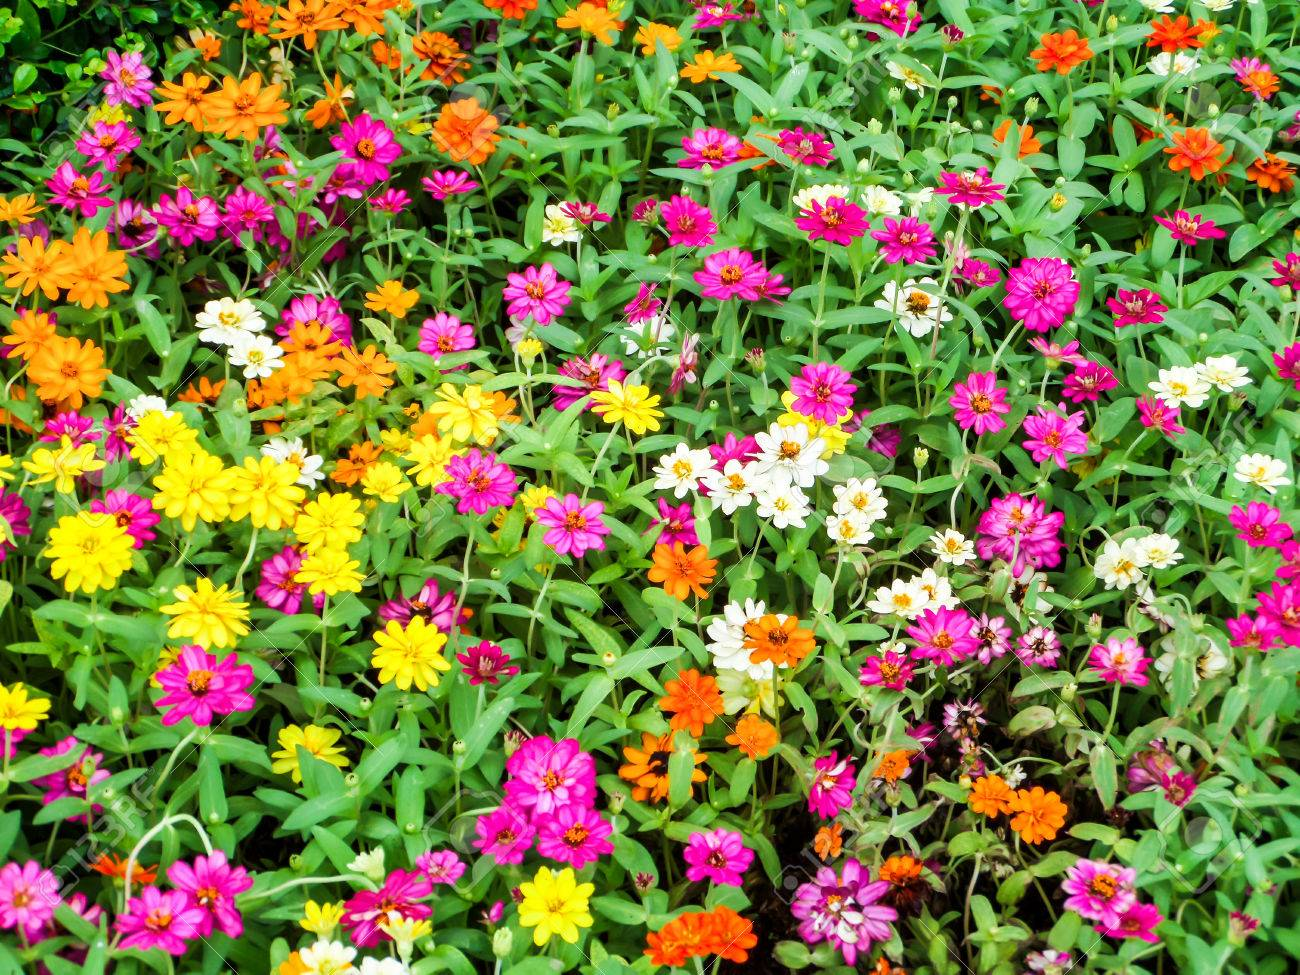 The Zinnia Flower Is One Of The Most Exuberant Flowers You Will Want